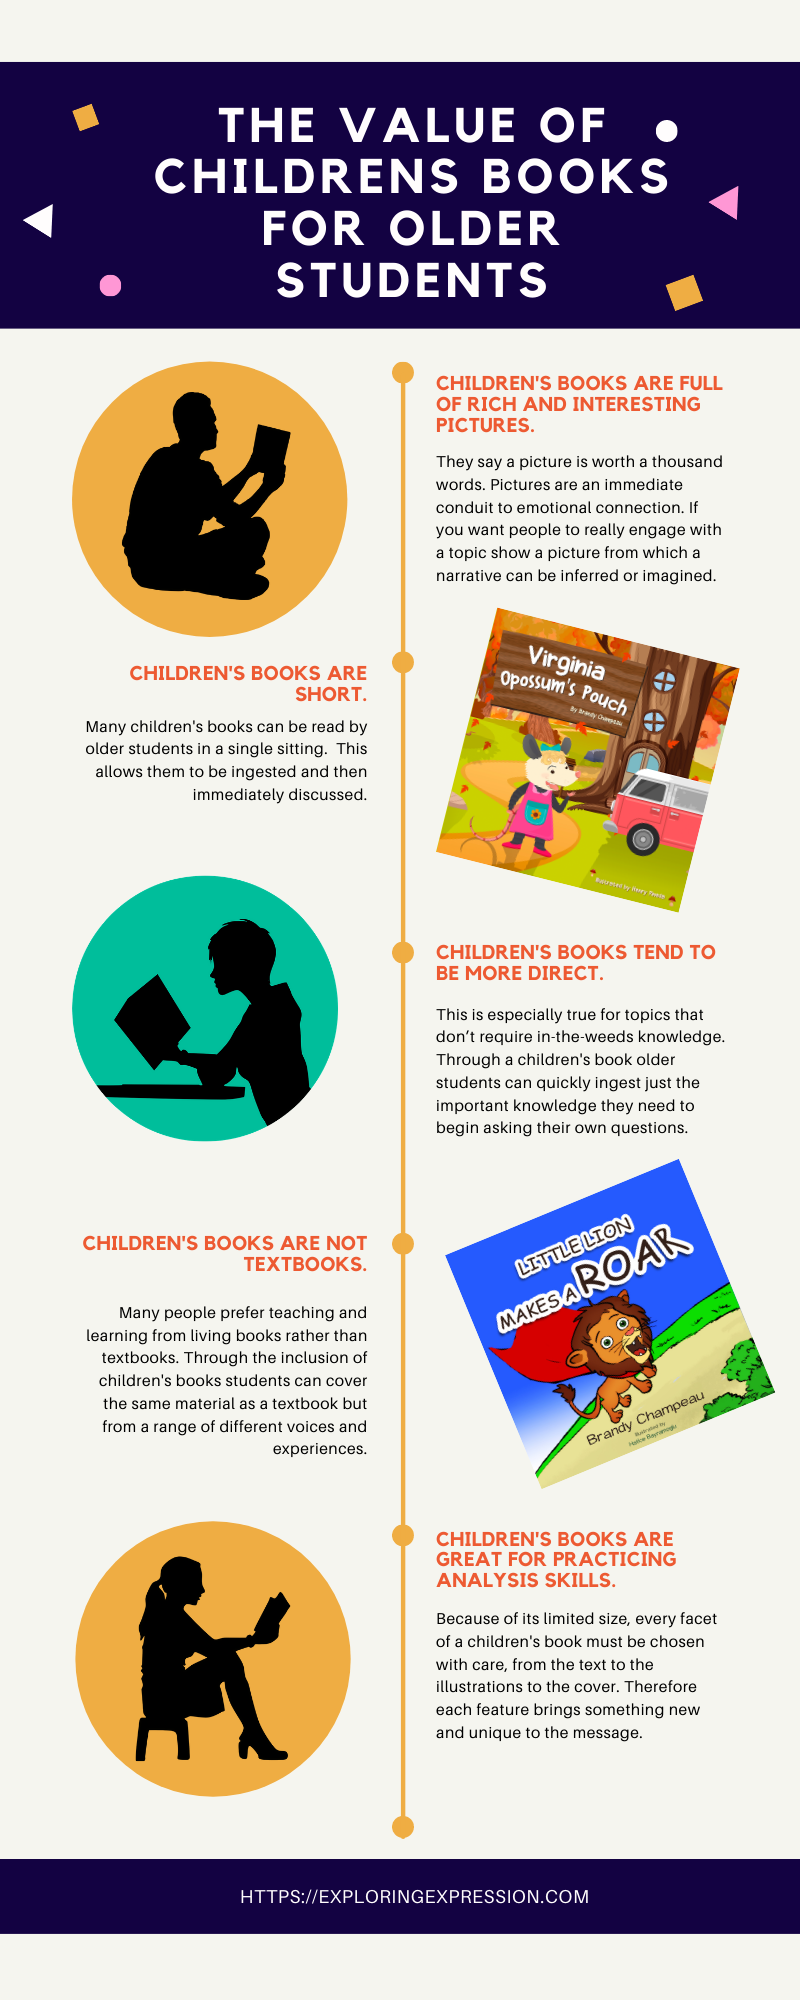 the value of children's books for older students